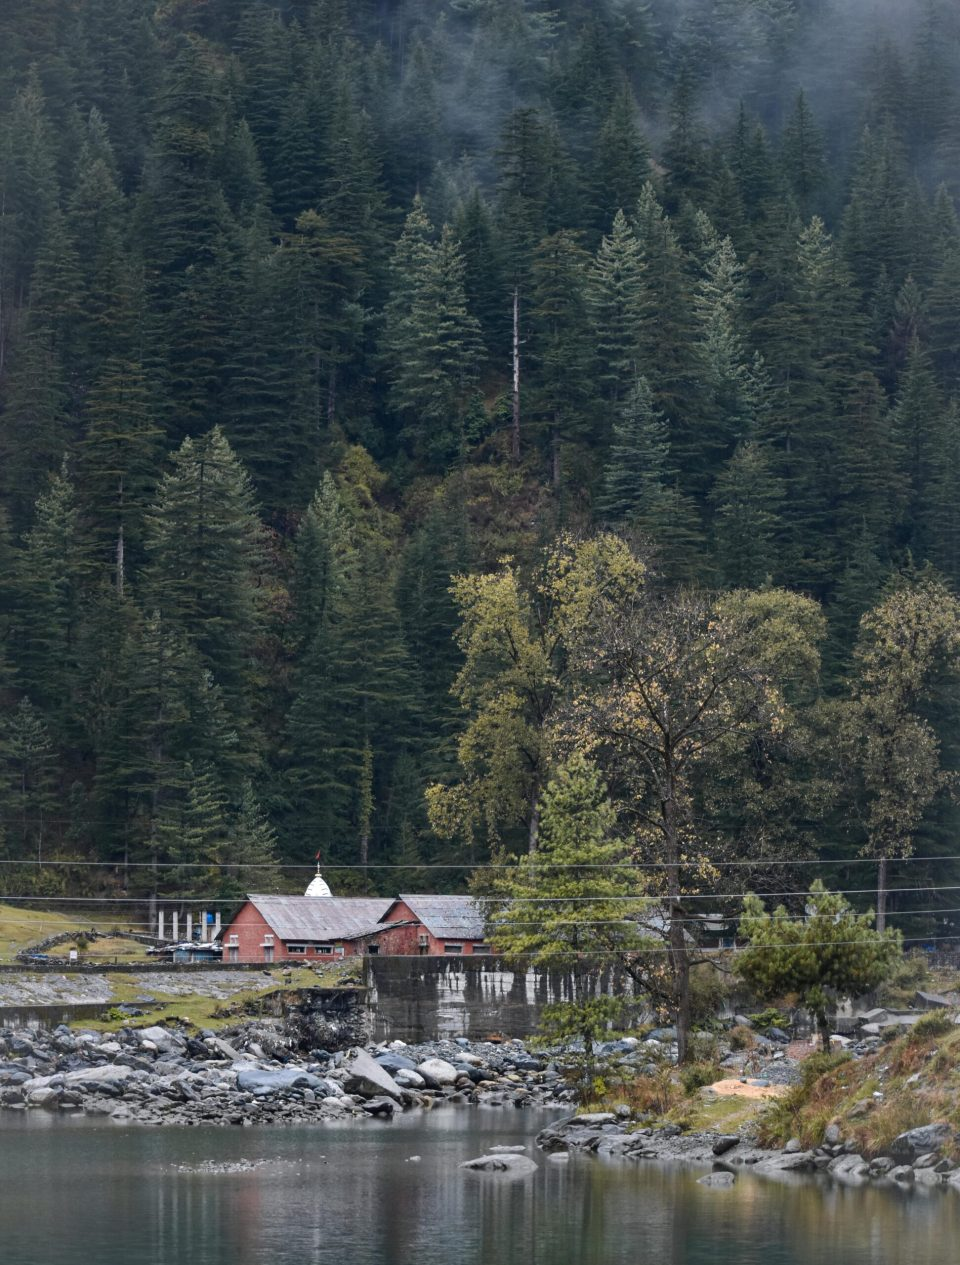 Barot valley on a local bus